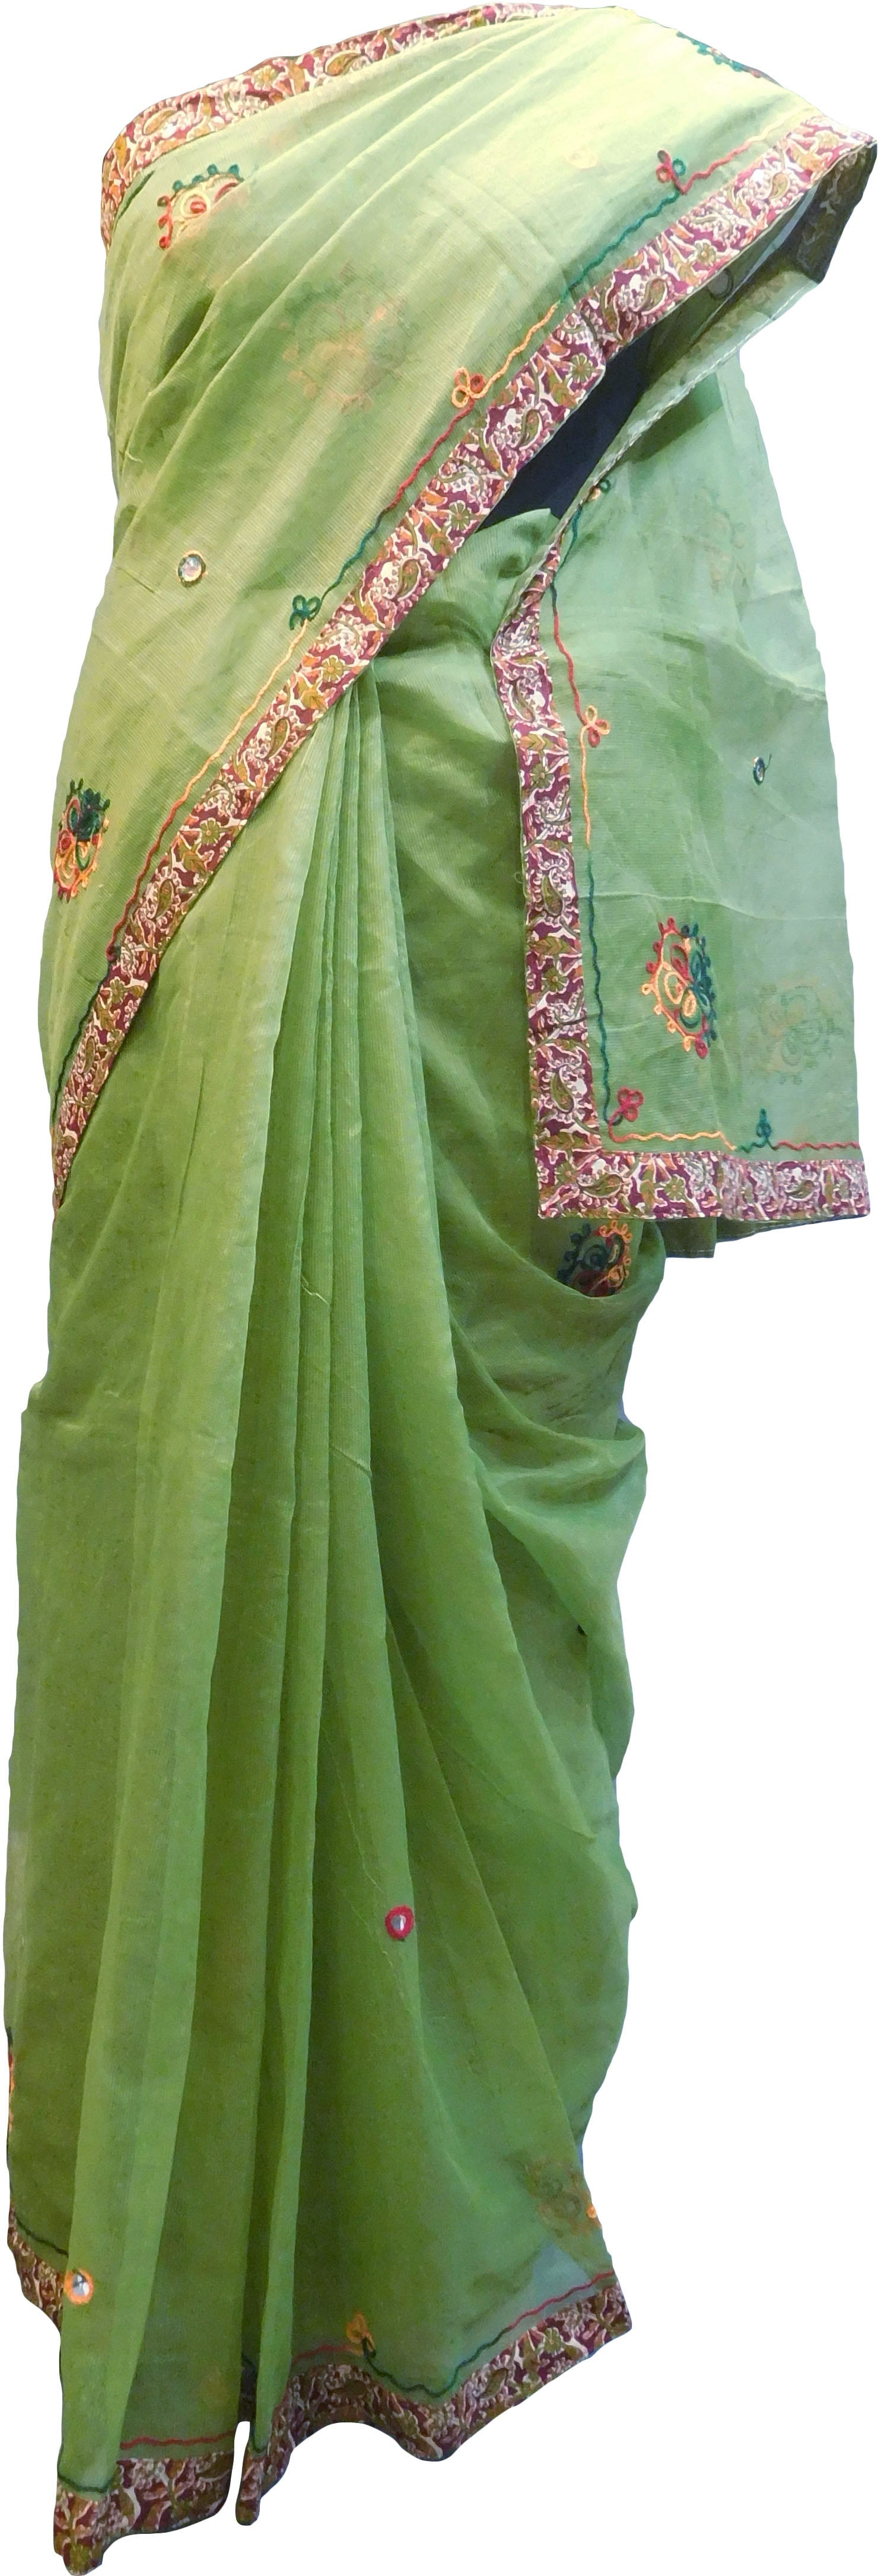 SMSAREE Green Designer Wedding Partywear Supernet (Cotton) Thread Hand Embroidery Work Bridal Saree Sari With Blouse Piece F029